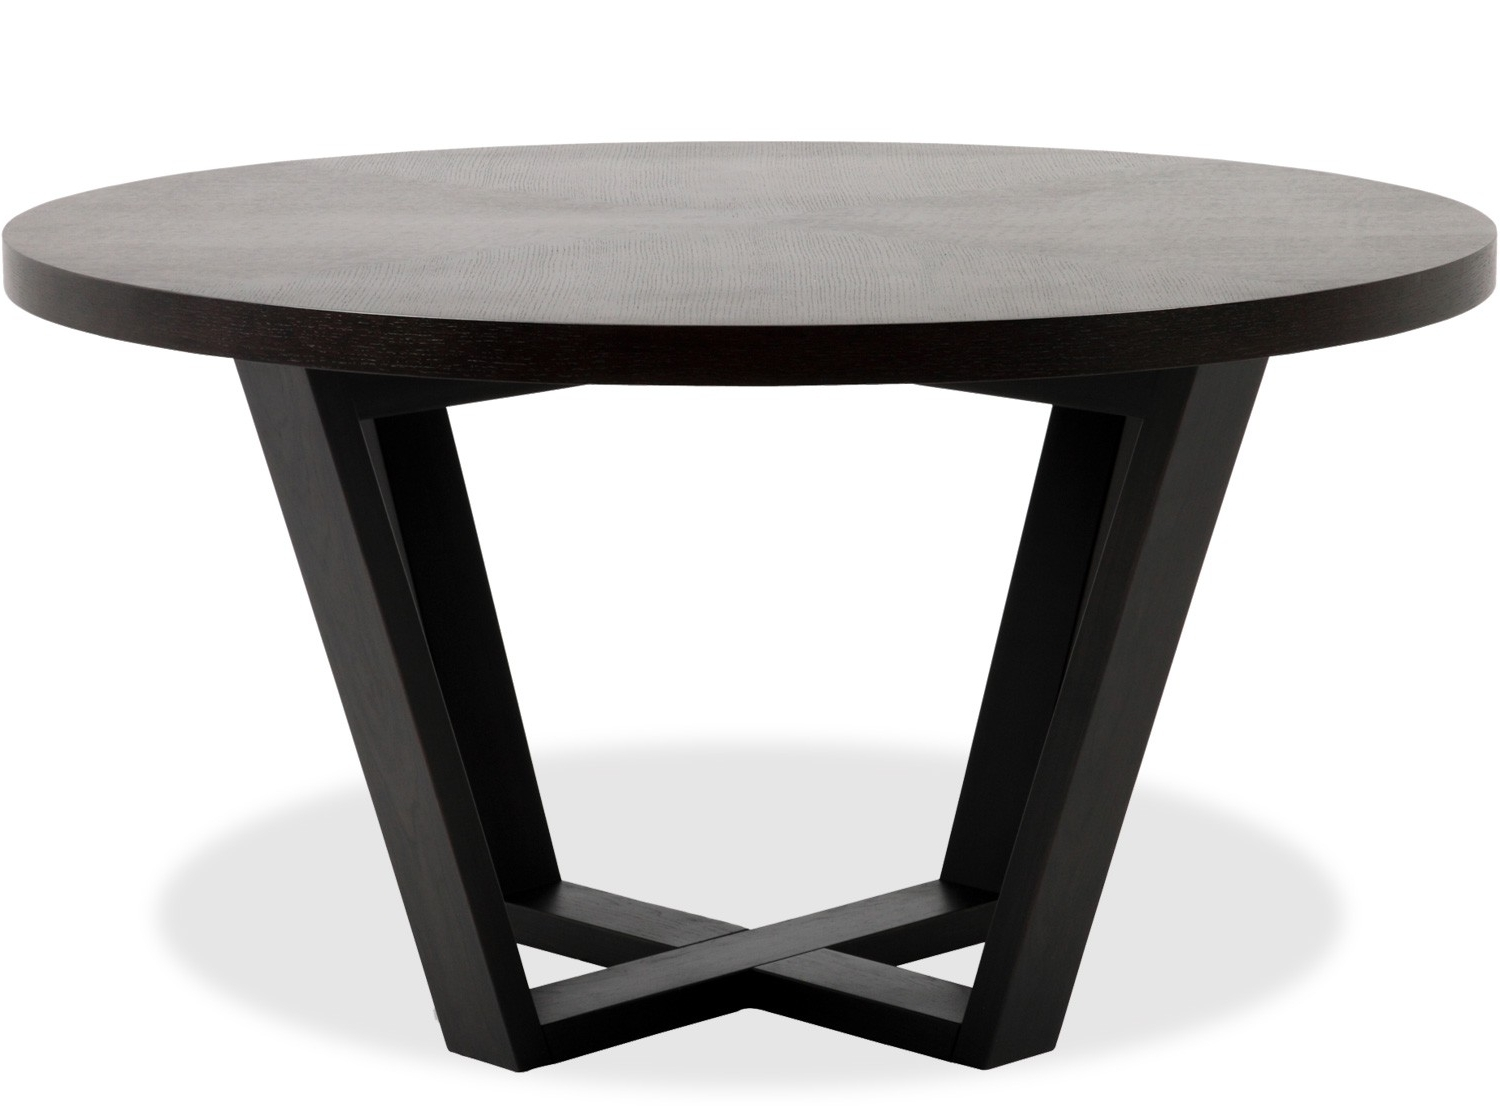 Dining Tables: Outstanding Round Black Dining Table Round Pedestal Inside 2018 Circular Dining Tables (Gallery 20 of 25)